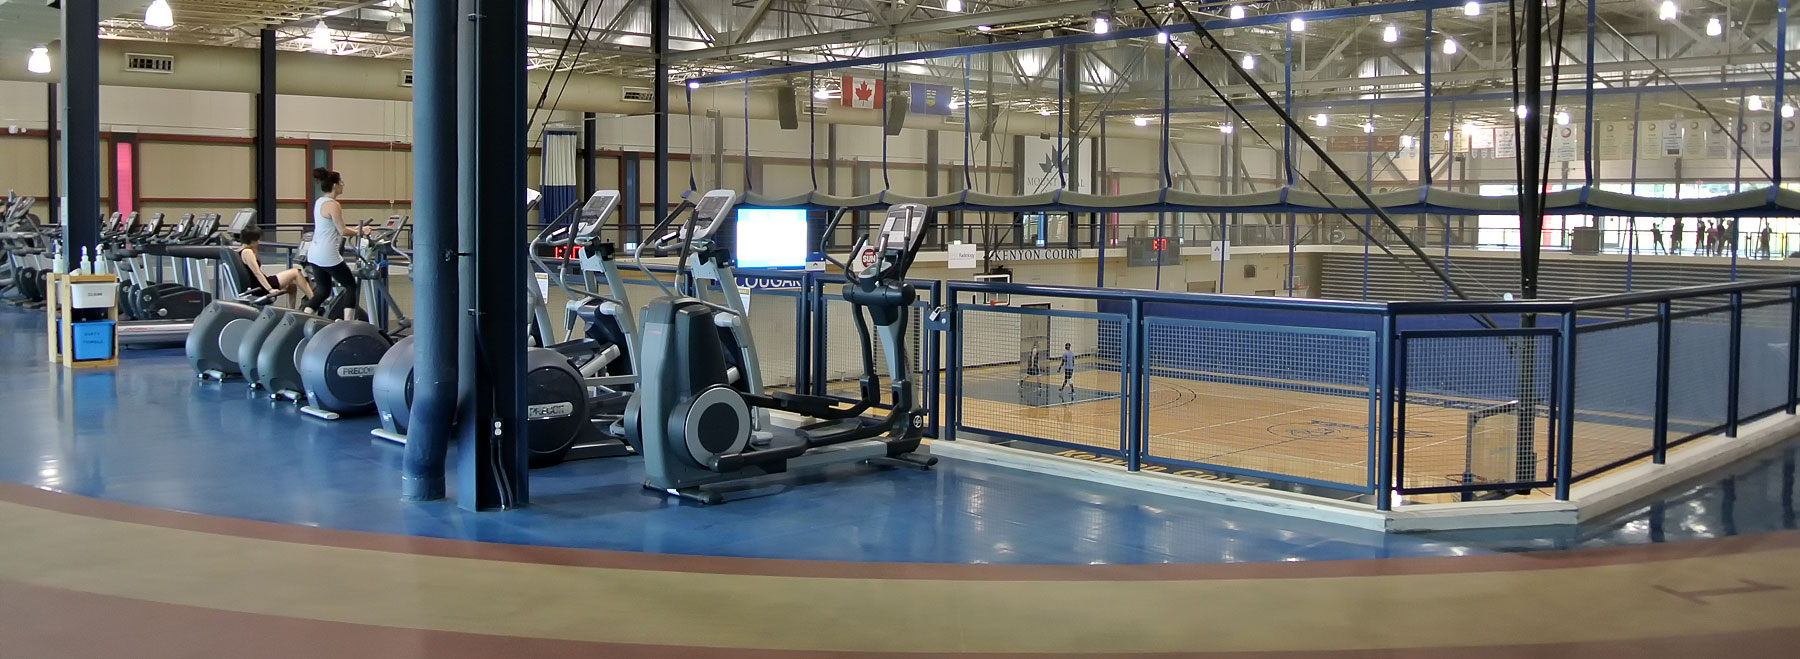 The Kenyon Gymnasium, fitness area and running track at Calgary's Mount Royal University